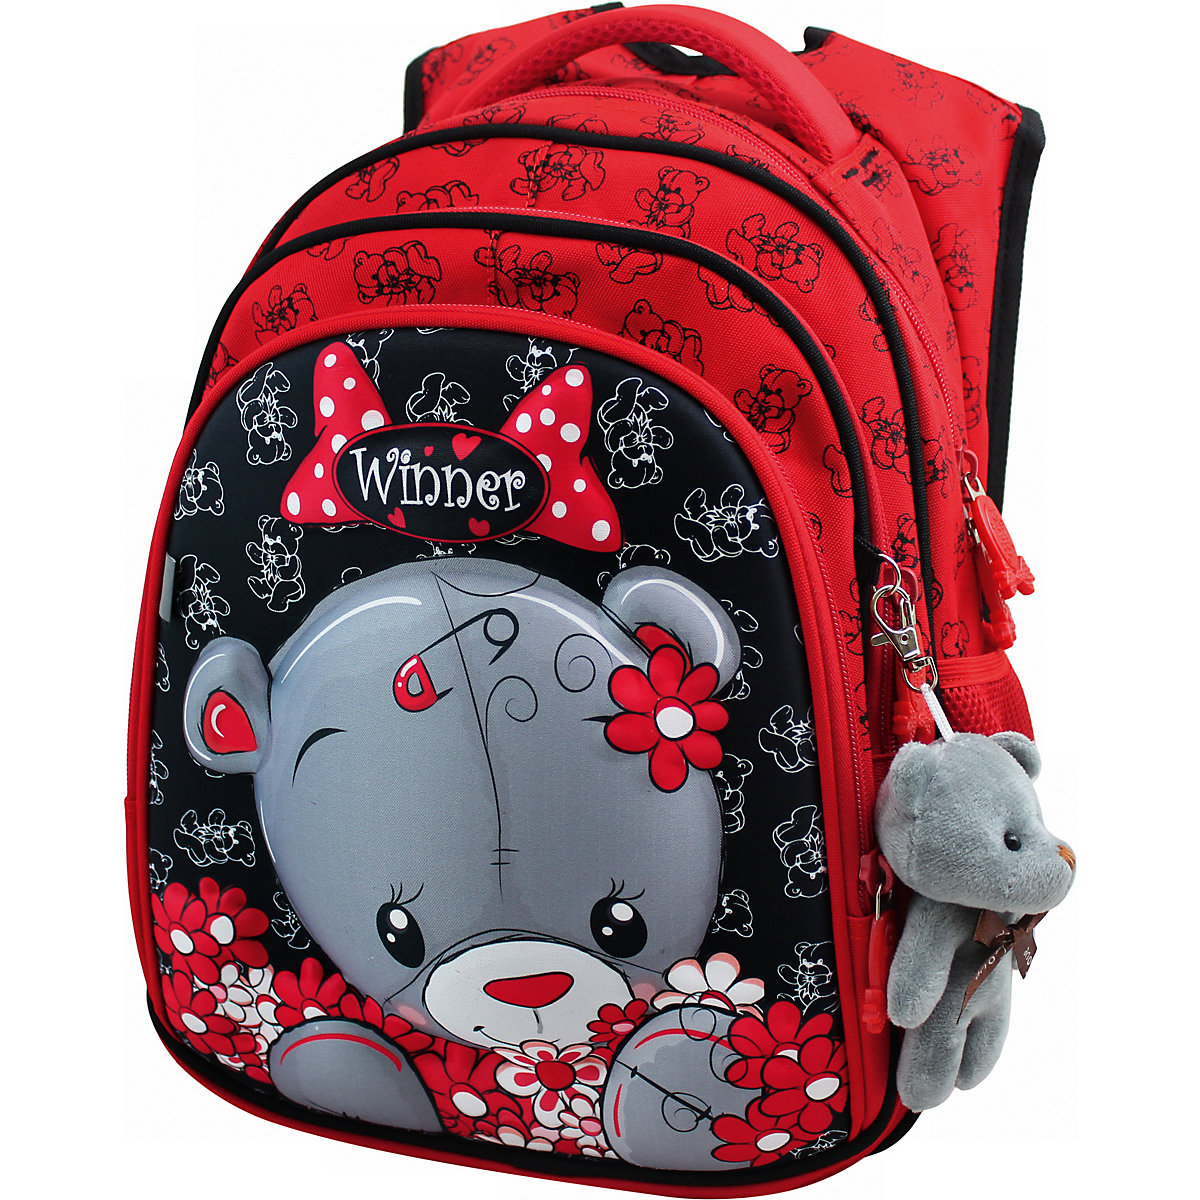 WINNER School Bags 11393766 schoolbag backpack orthopedic bag for boy and girl animals large capacity pu leather unisex backpack fashion school bags for teenager women men travel backpacks high quality shoulders bag